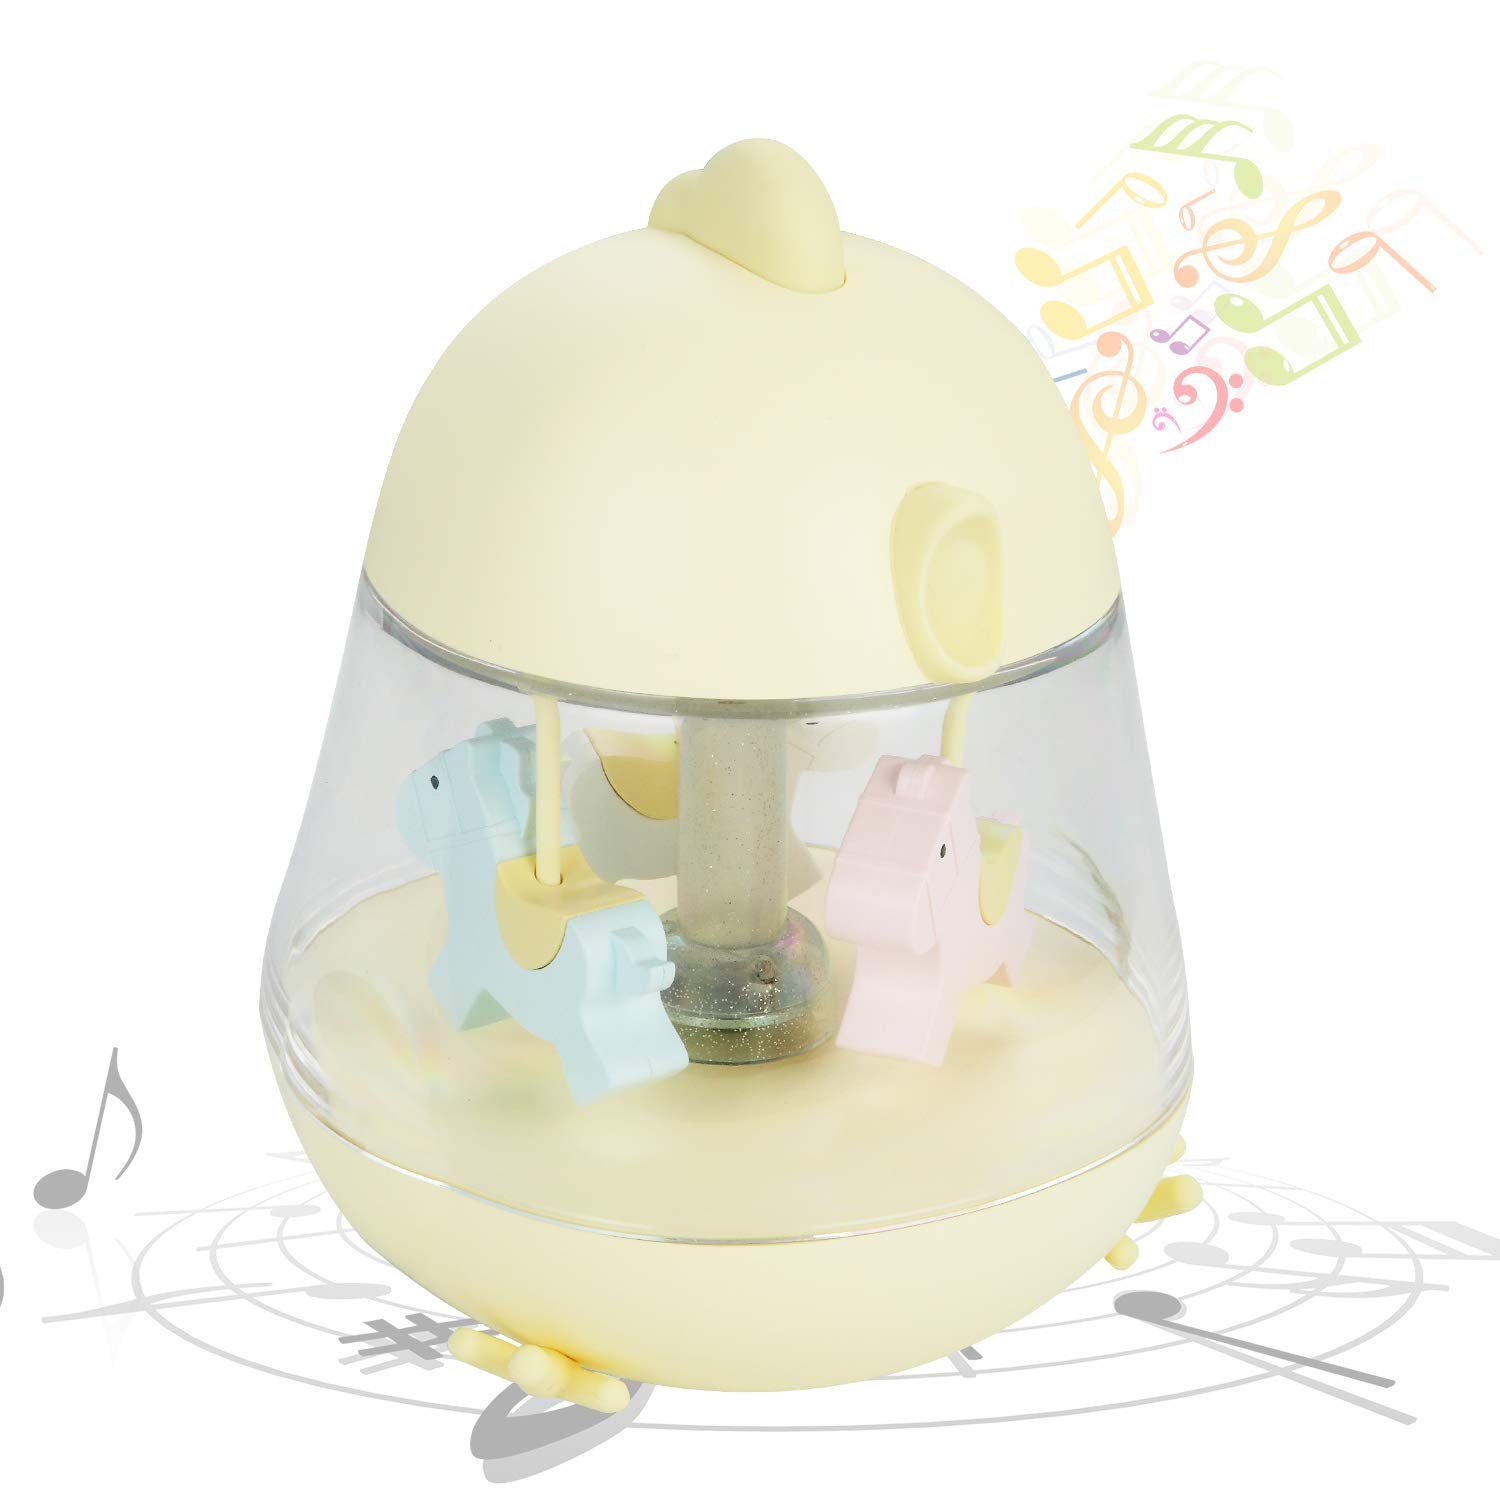 iEGrow Carousel Music Box, Touch Sensor LED Night Lights with USB Charging, 7 Color Gradient Lamp, Musical Toys Gifts for Kids, Baby, Birthday,Wedding (Yellow)